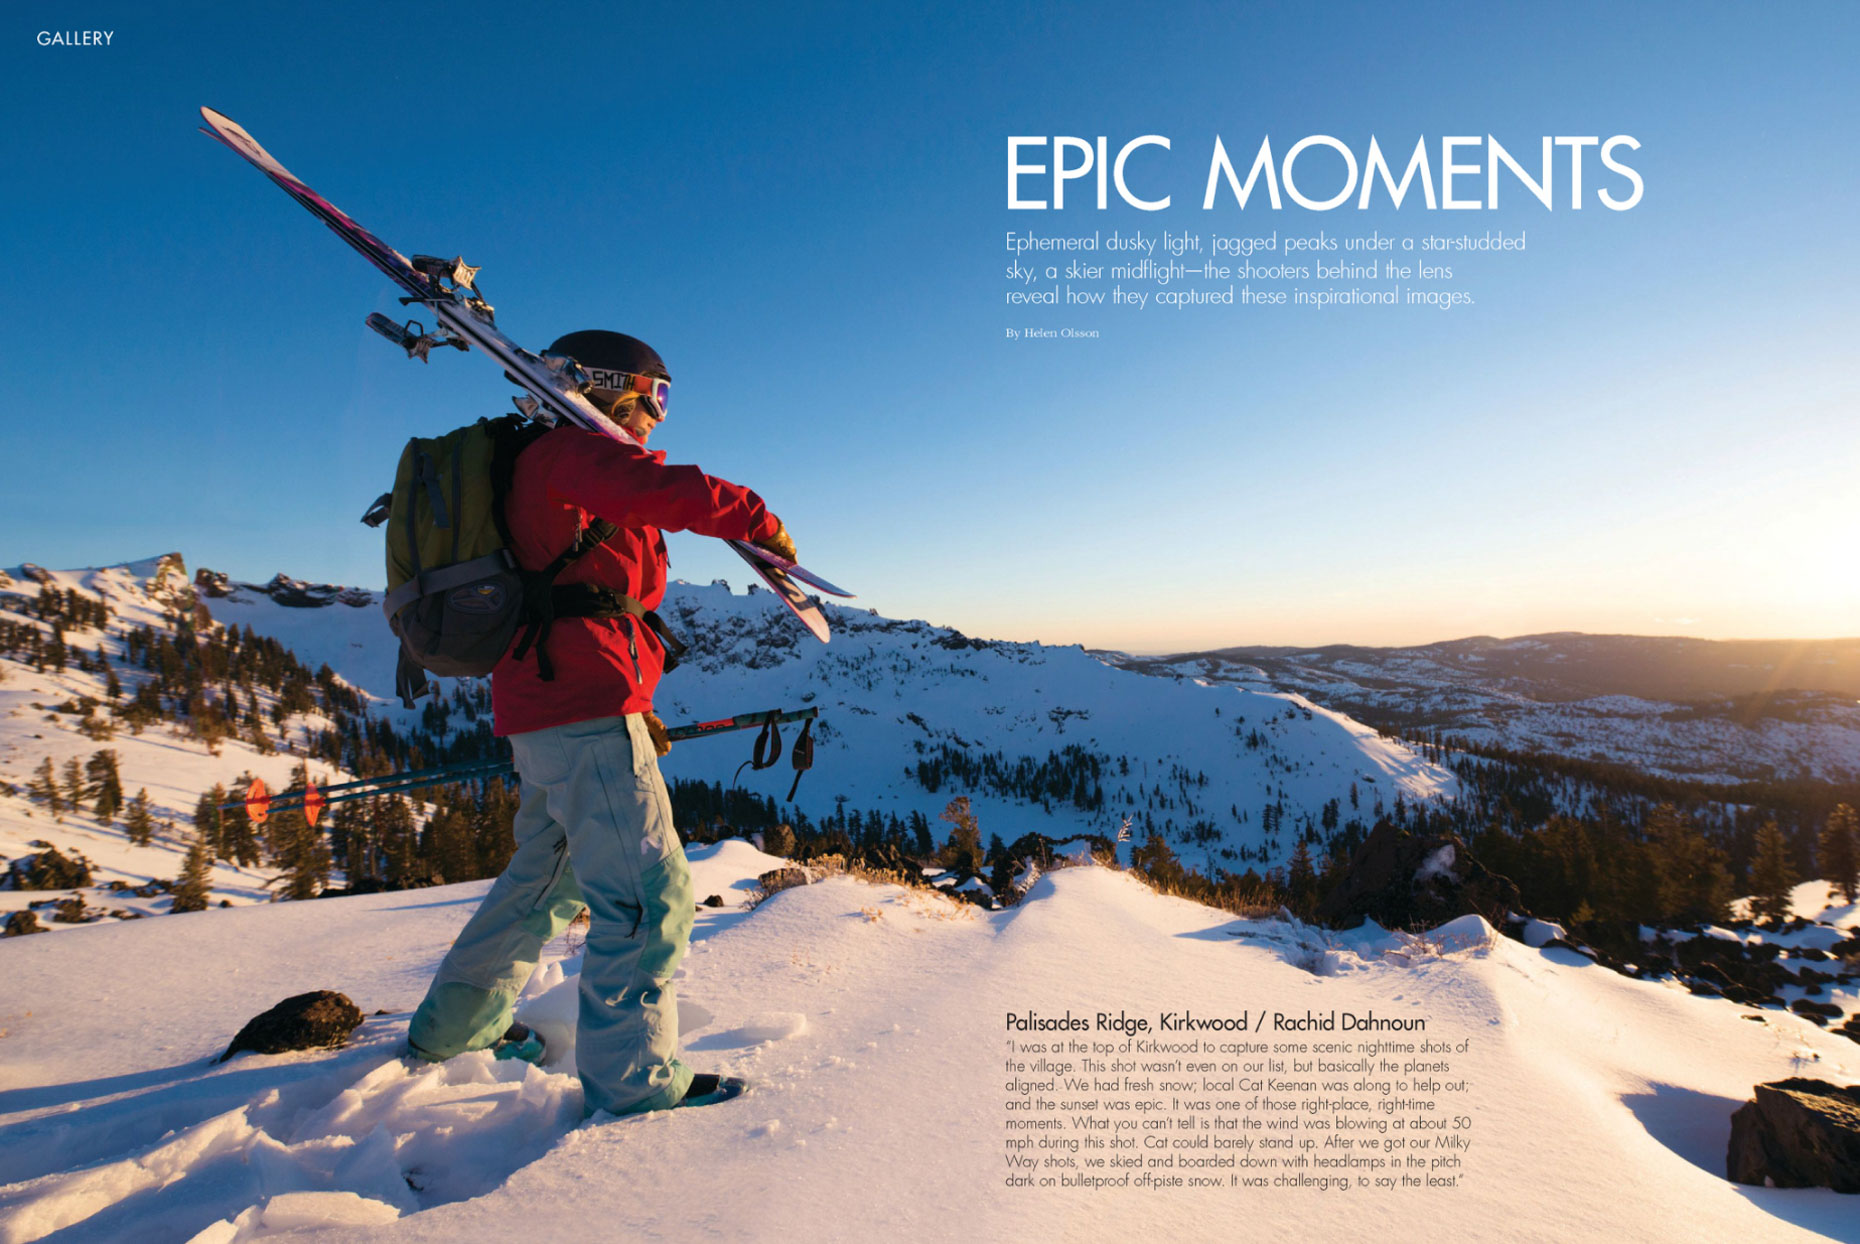 Epic Life Magazine - Kirkwood, California